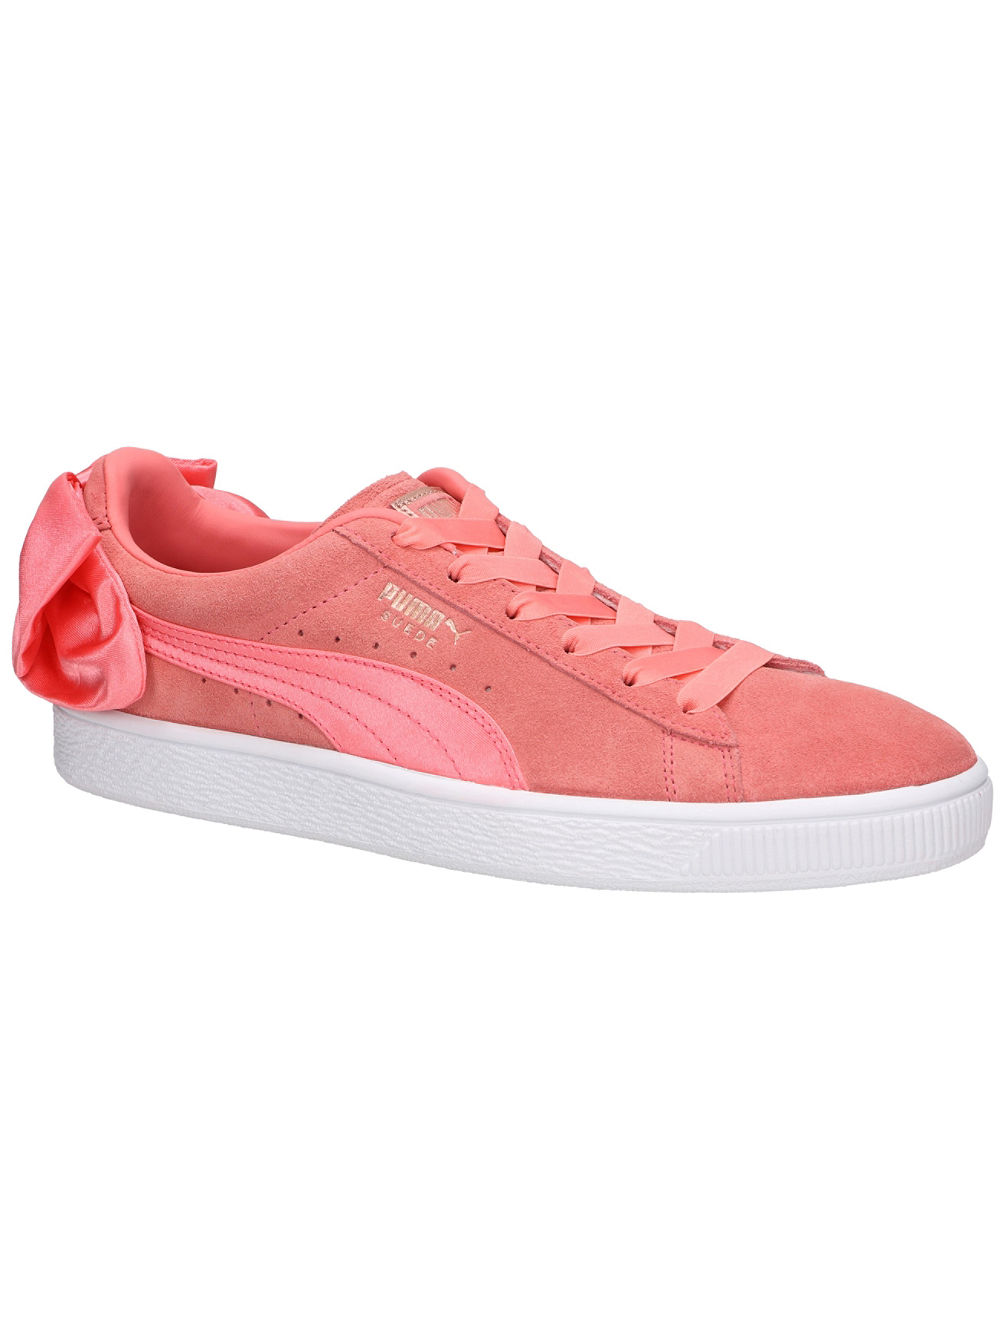 low priced 59fcc f32c1 Suede Bow Sneakers